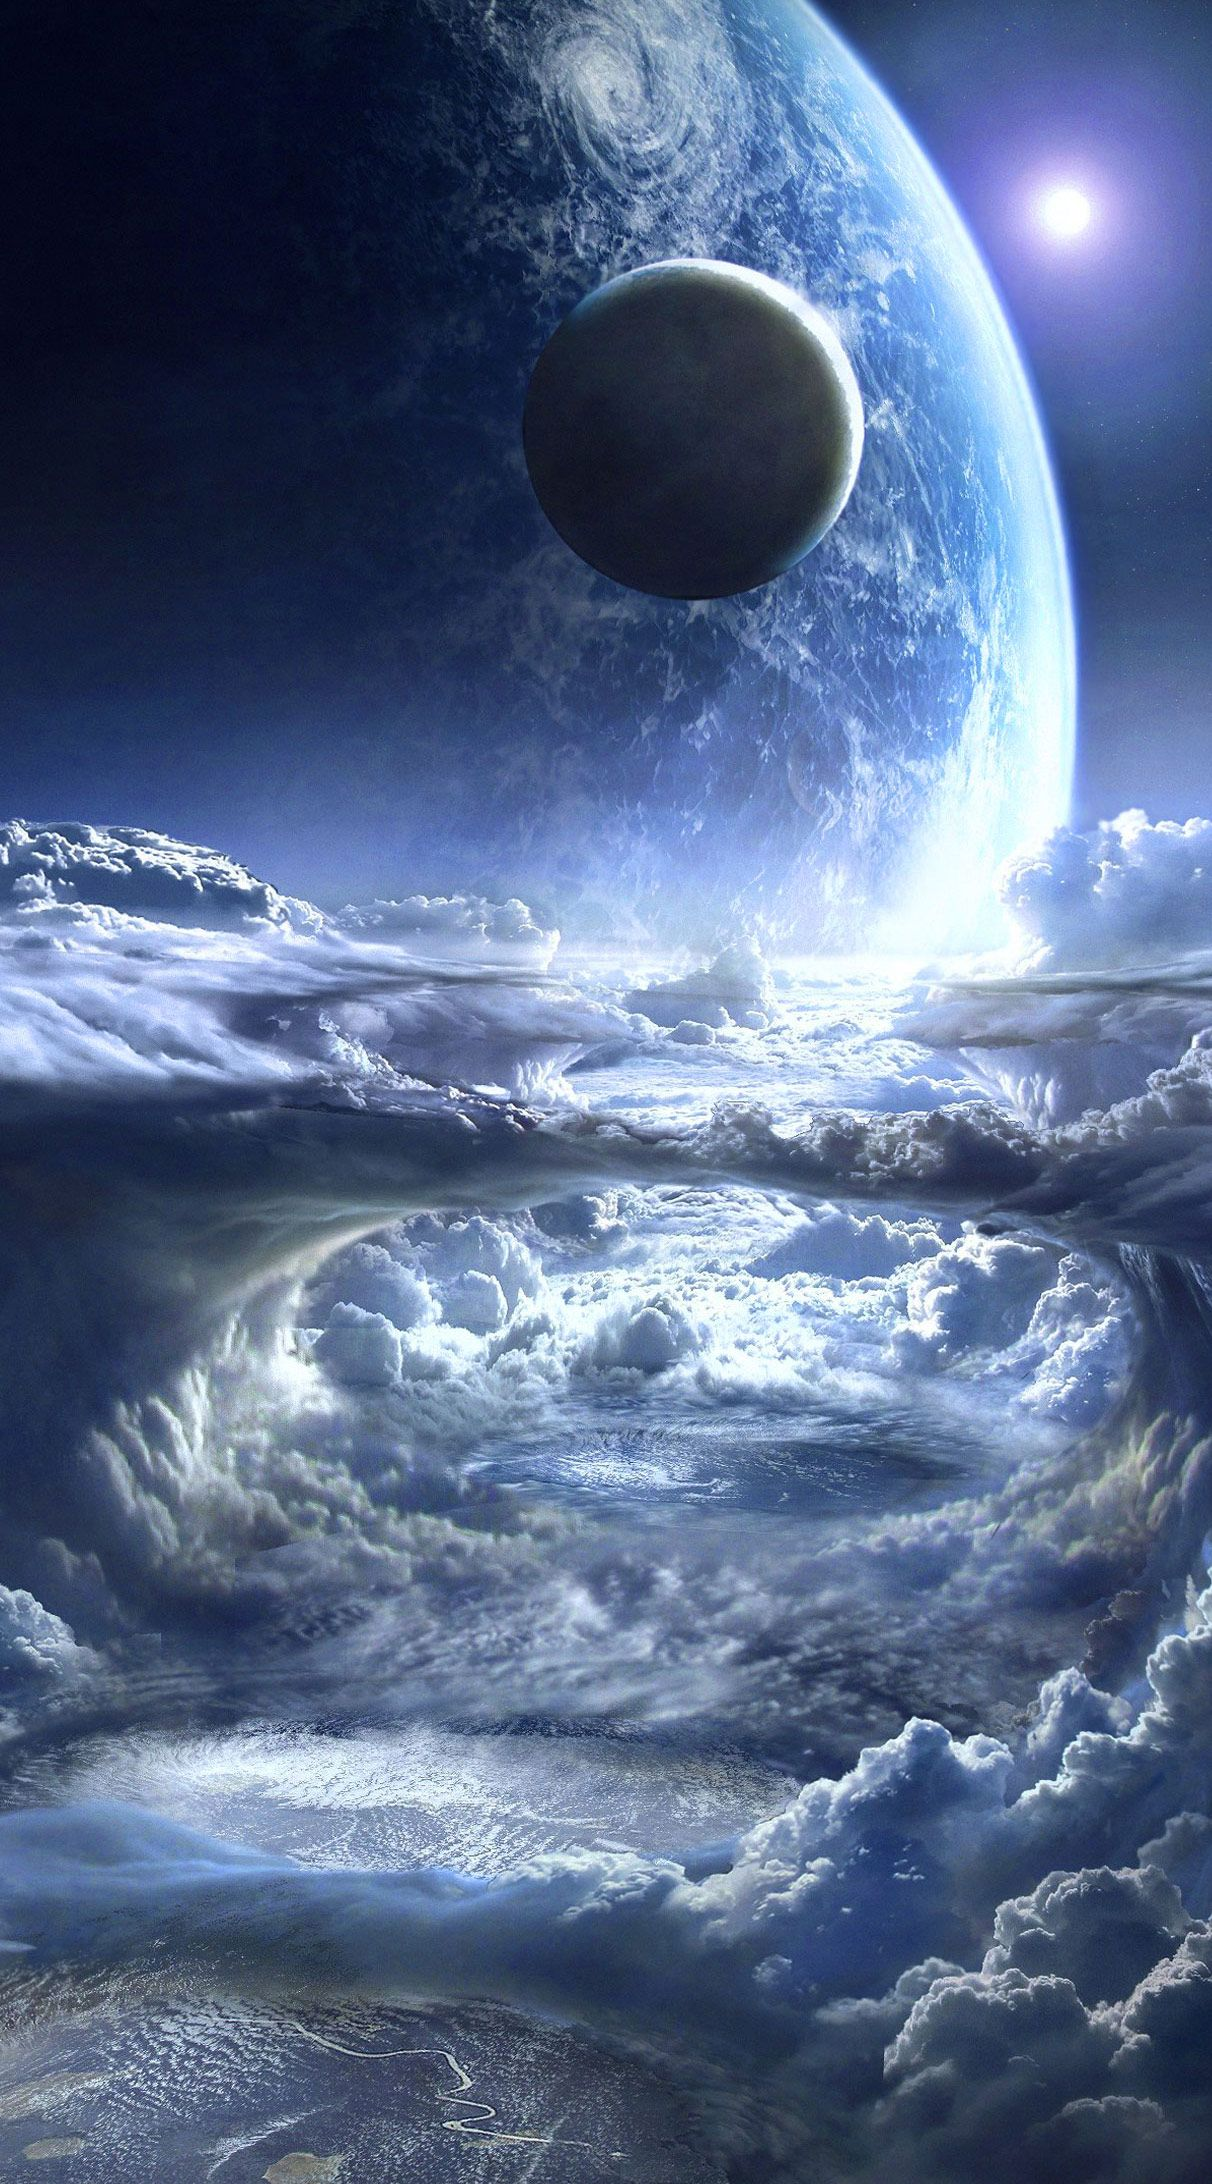 Sci fi wallpapers hd and widescreen sci fi wallpapers 4k for Sci fi background